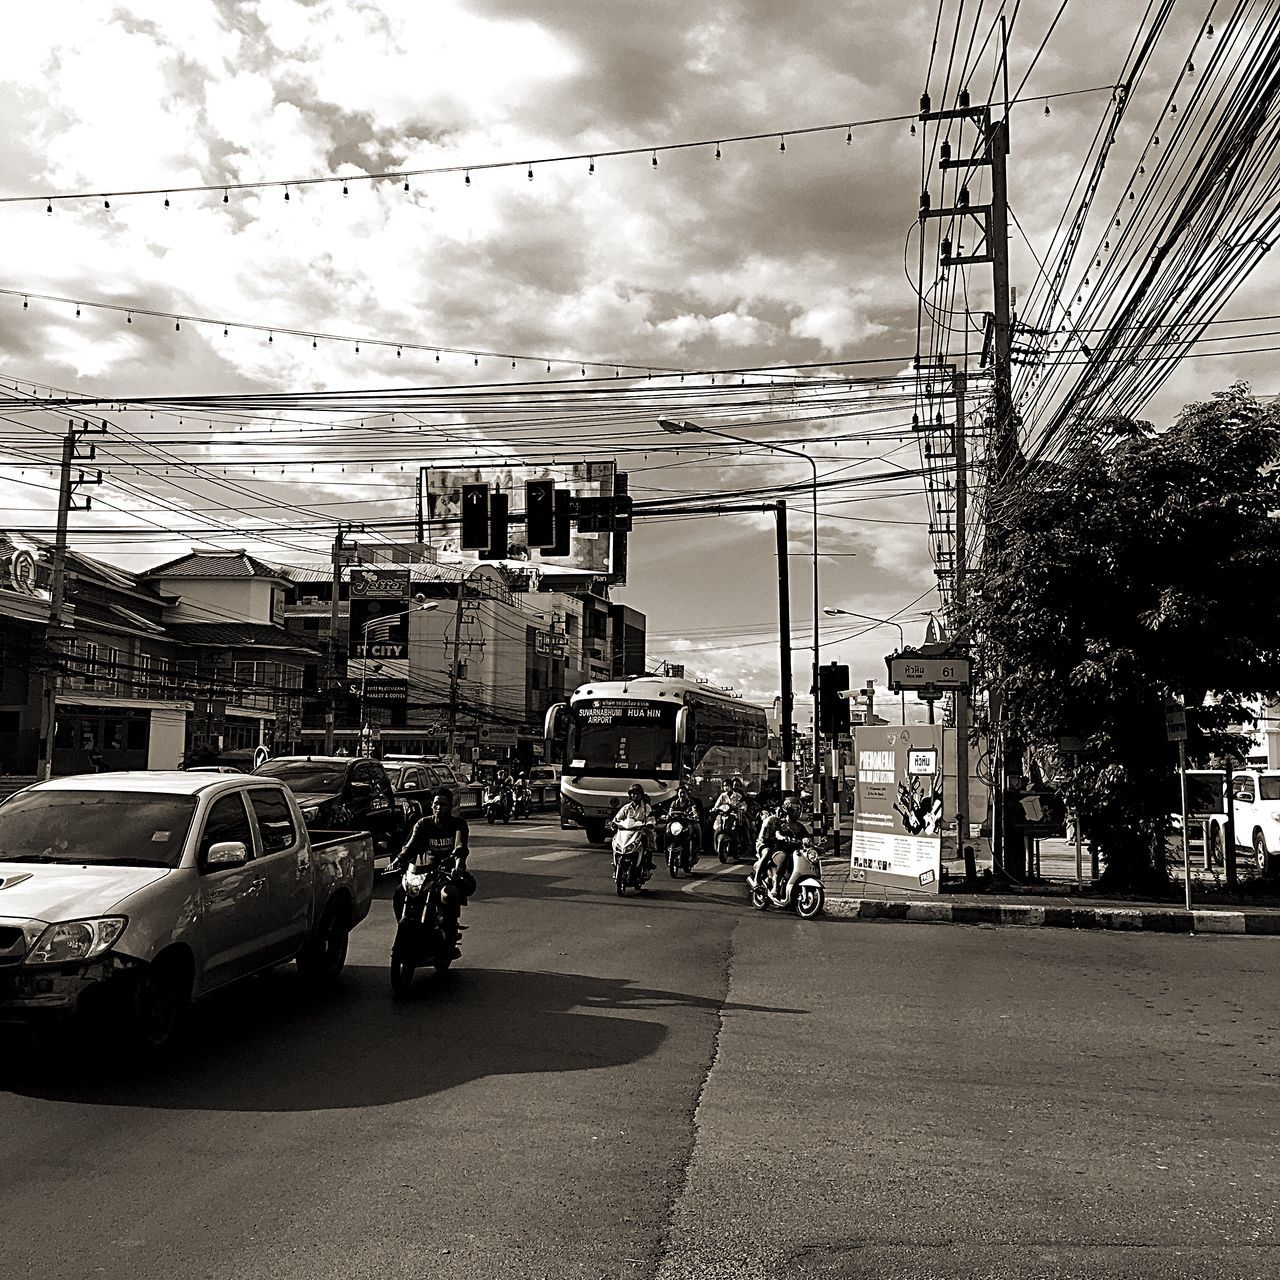 cable, transportation, car, sky, building exterior, architecture, built structure, street, road, power line, cloud - sky, mode of transport, land vehicle, electricity pylon, outdoors, city, day, city life, electricity, tree, telephone line, technology, nature, no people